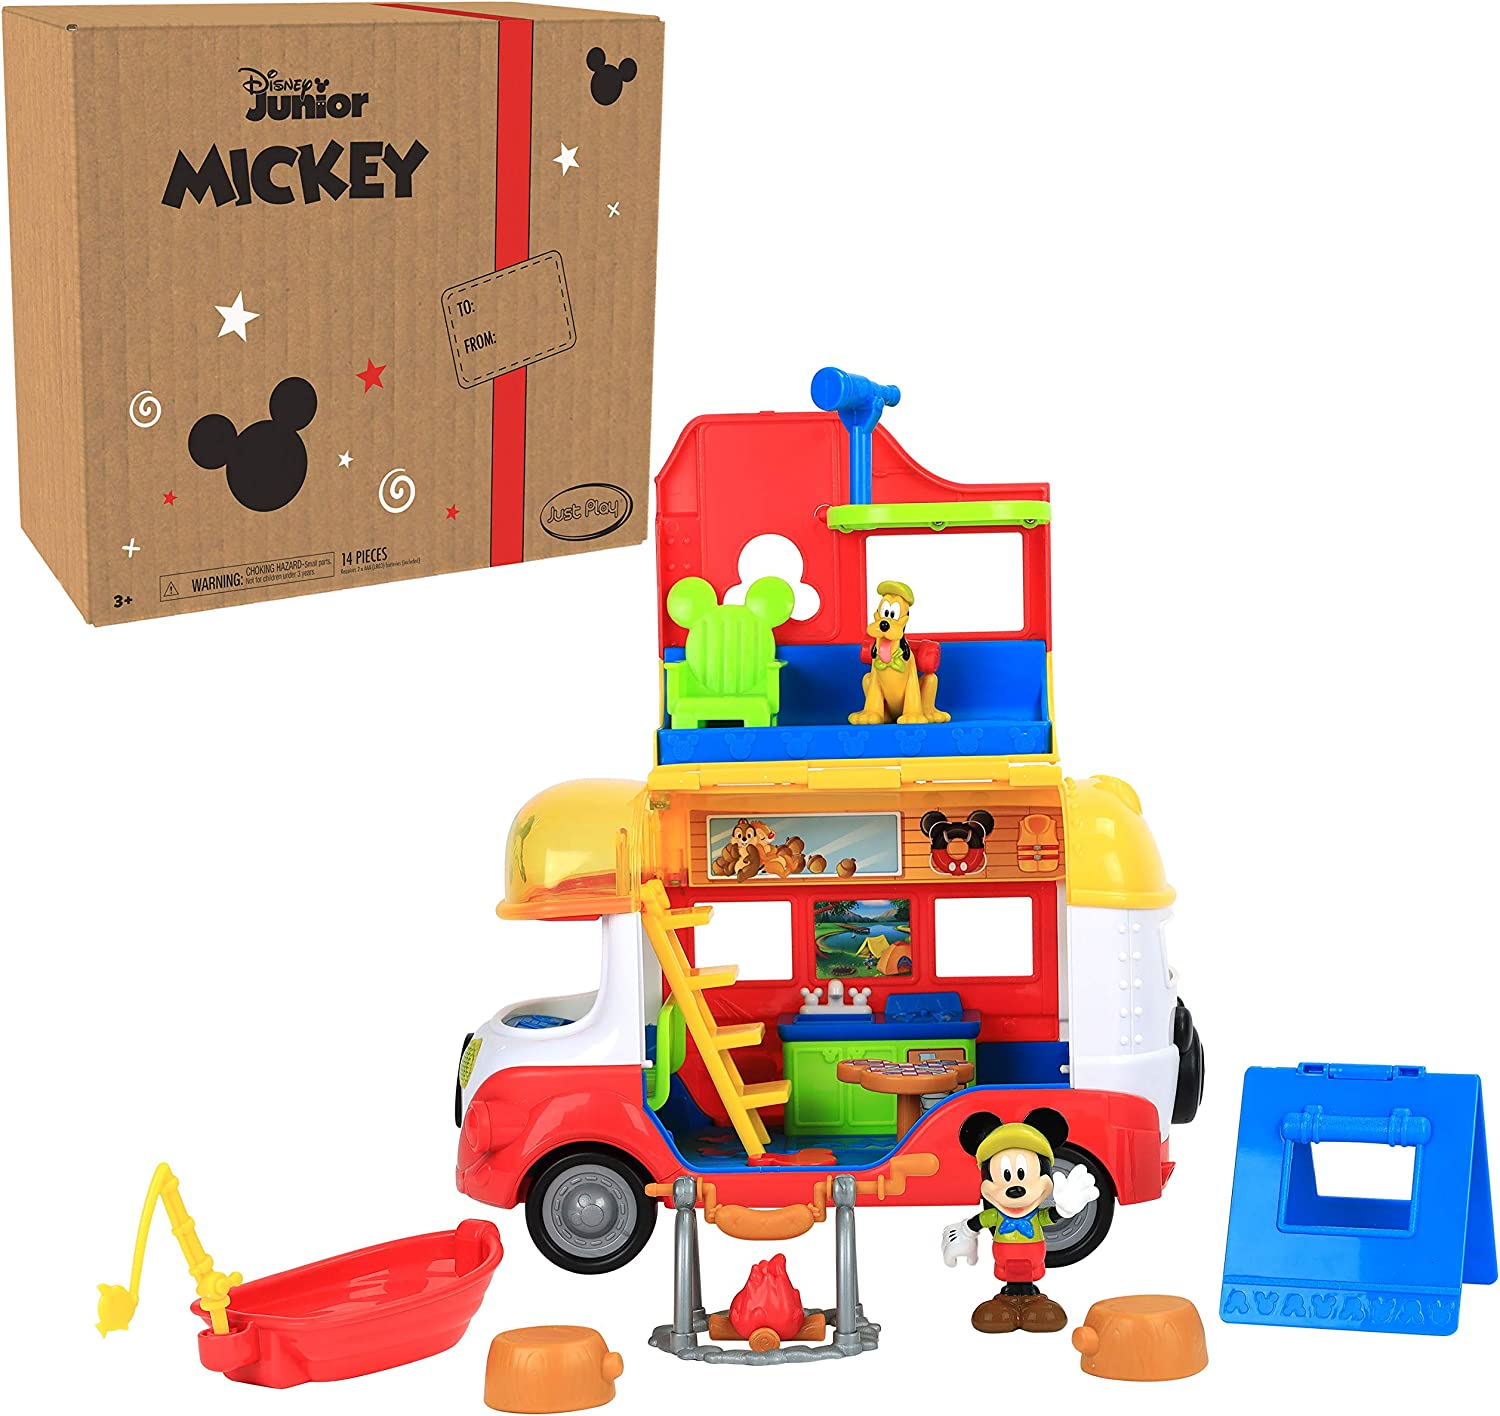 Disney Junior Mickey Mouse Outdoor and Explore Camper, Lights Multi-color